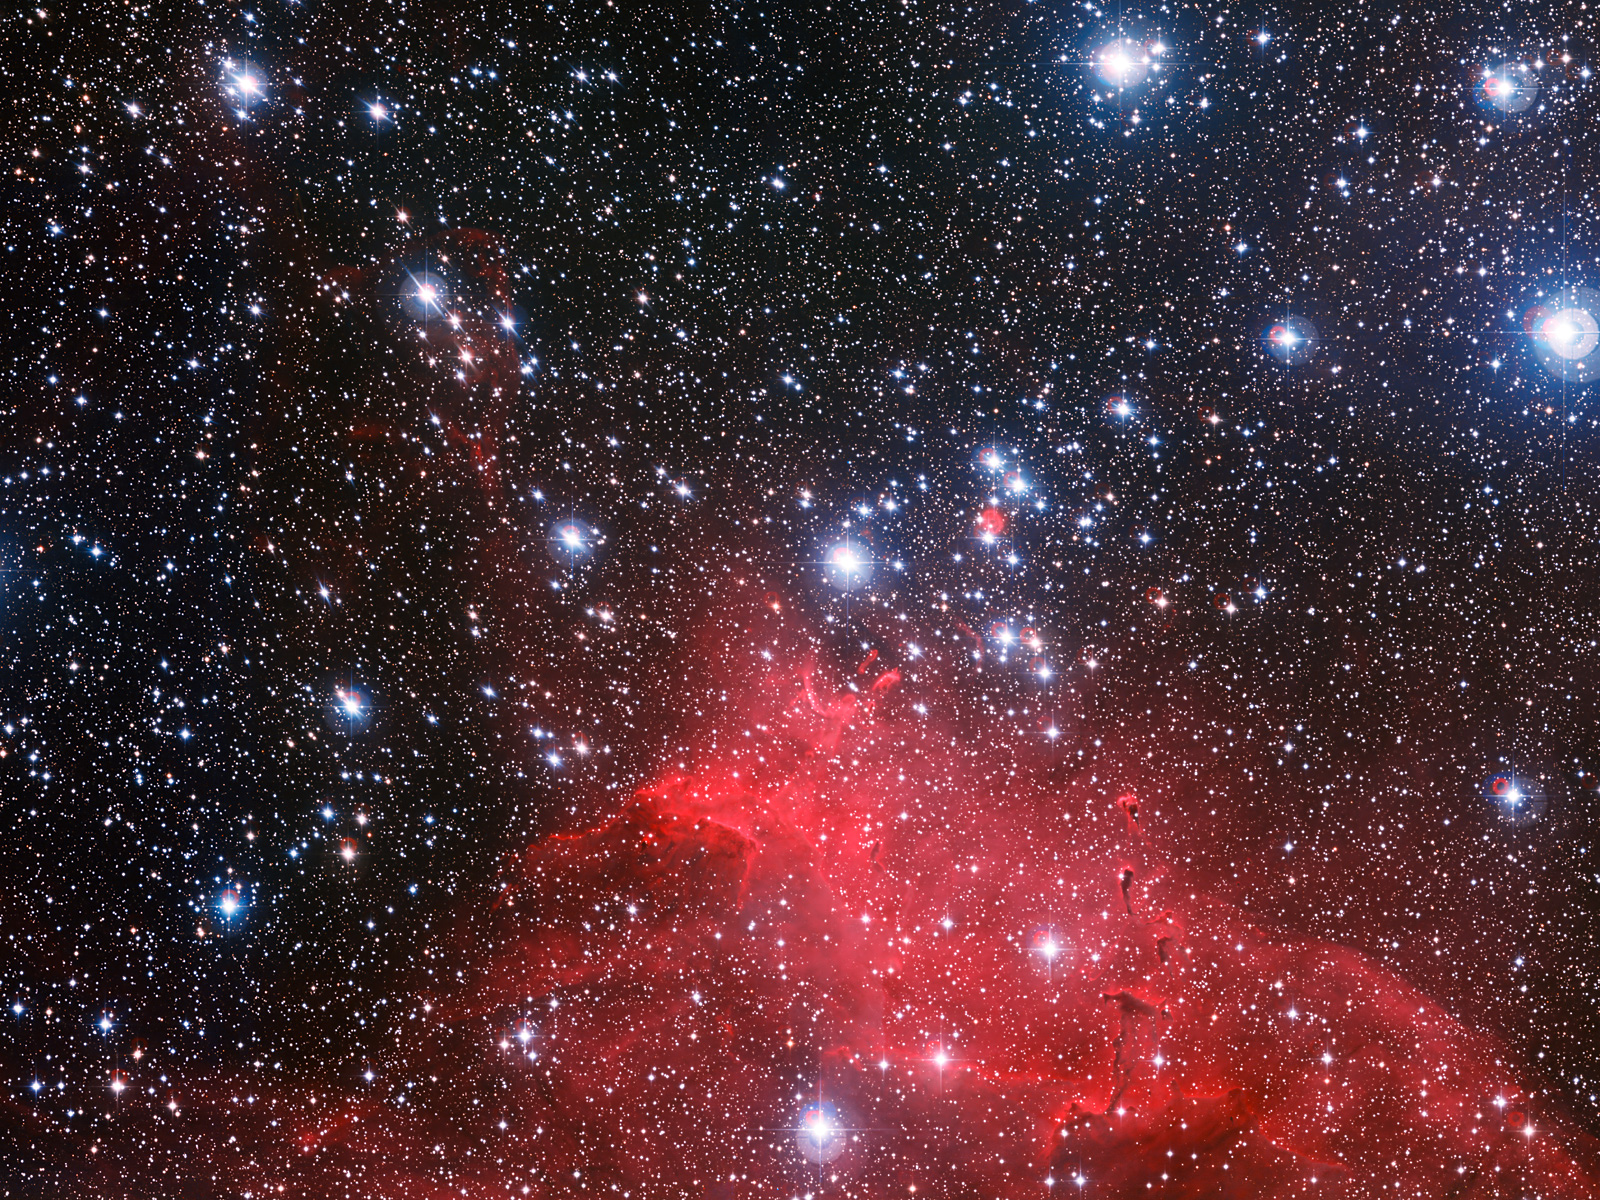 Clouds and NGC 3572 Star Cluster